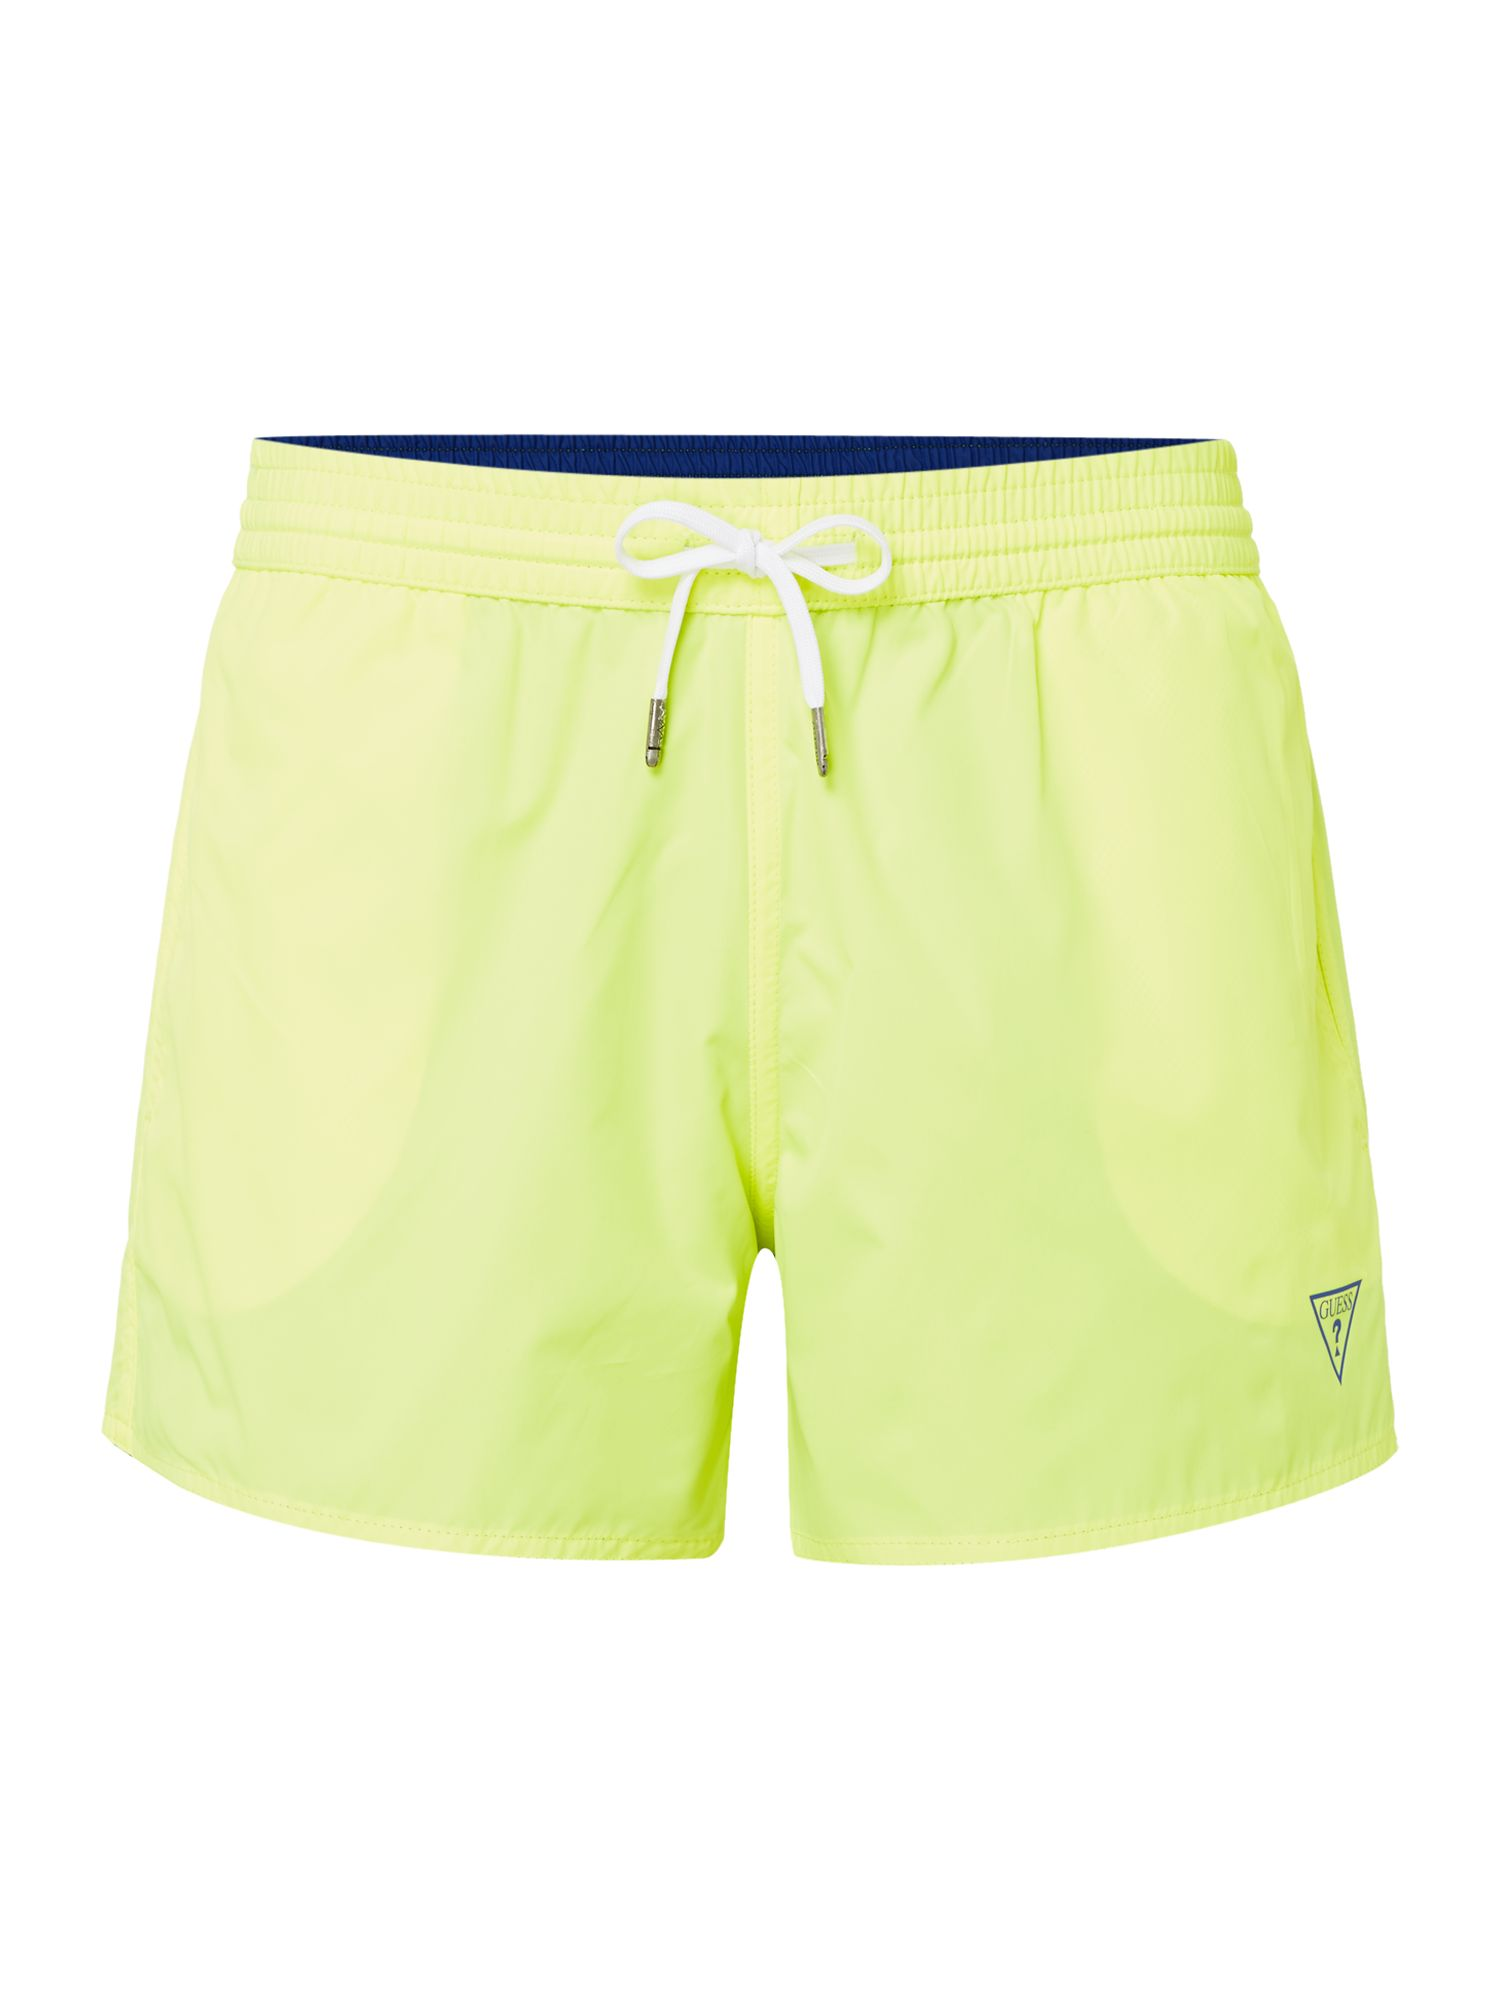 Men's Guess Reversible Logo Swim Shorts, Blue